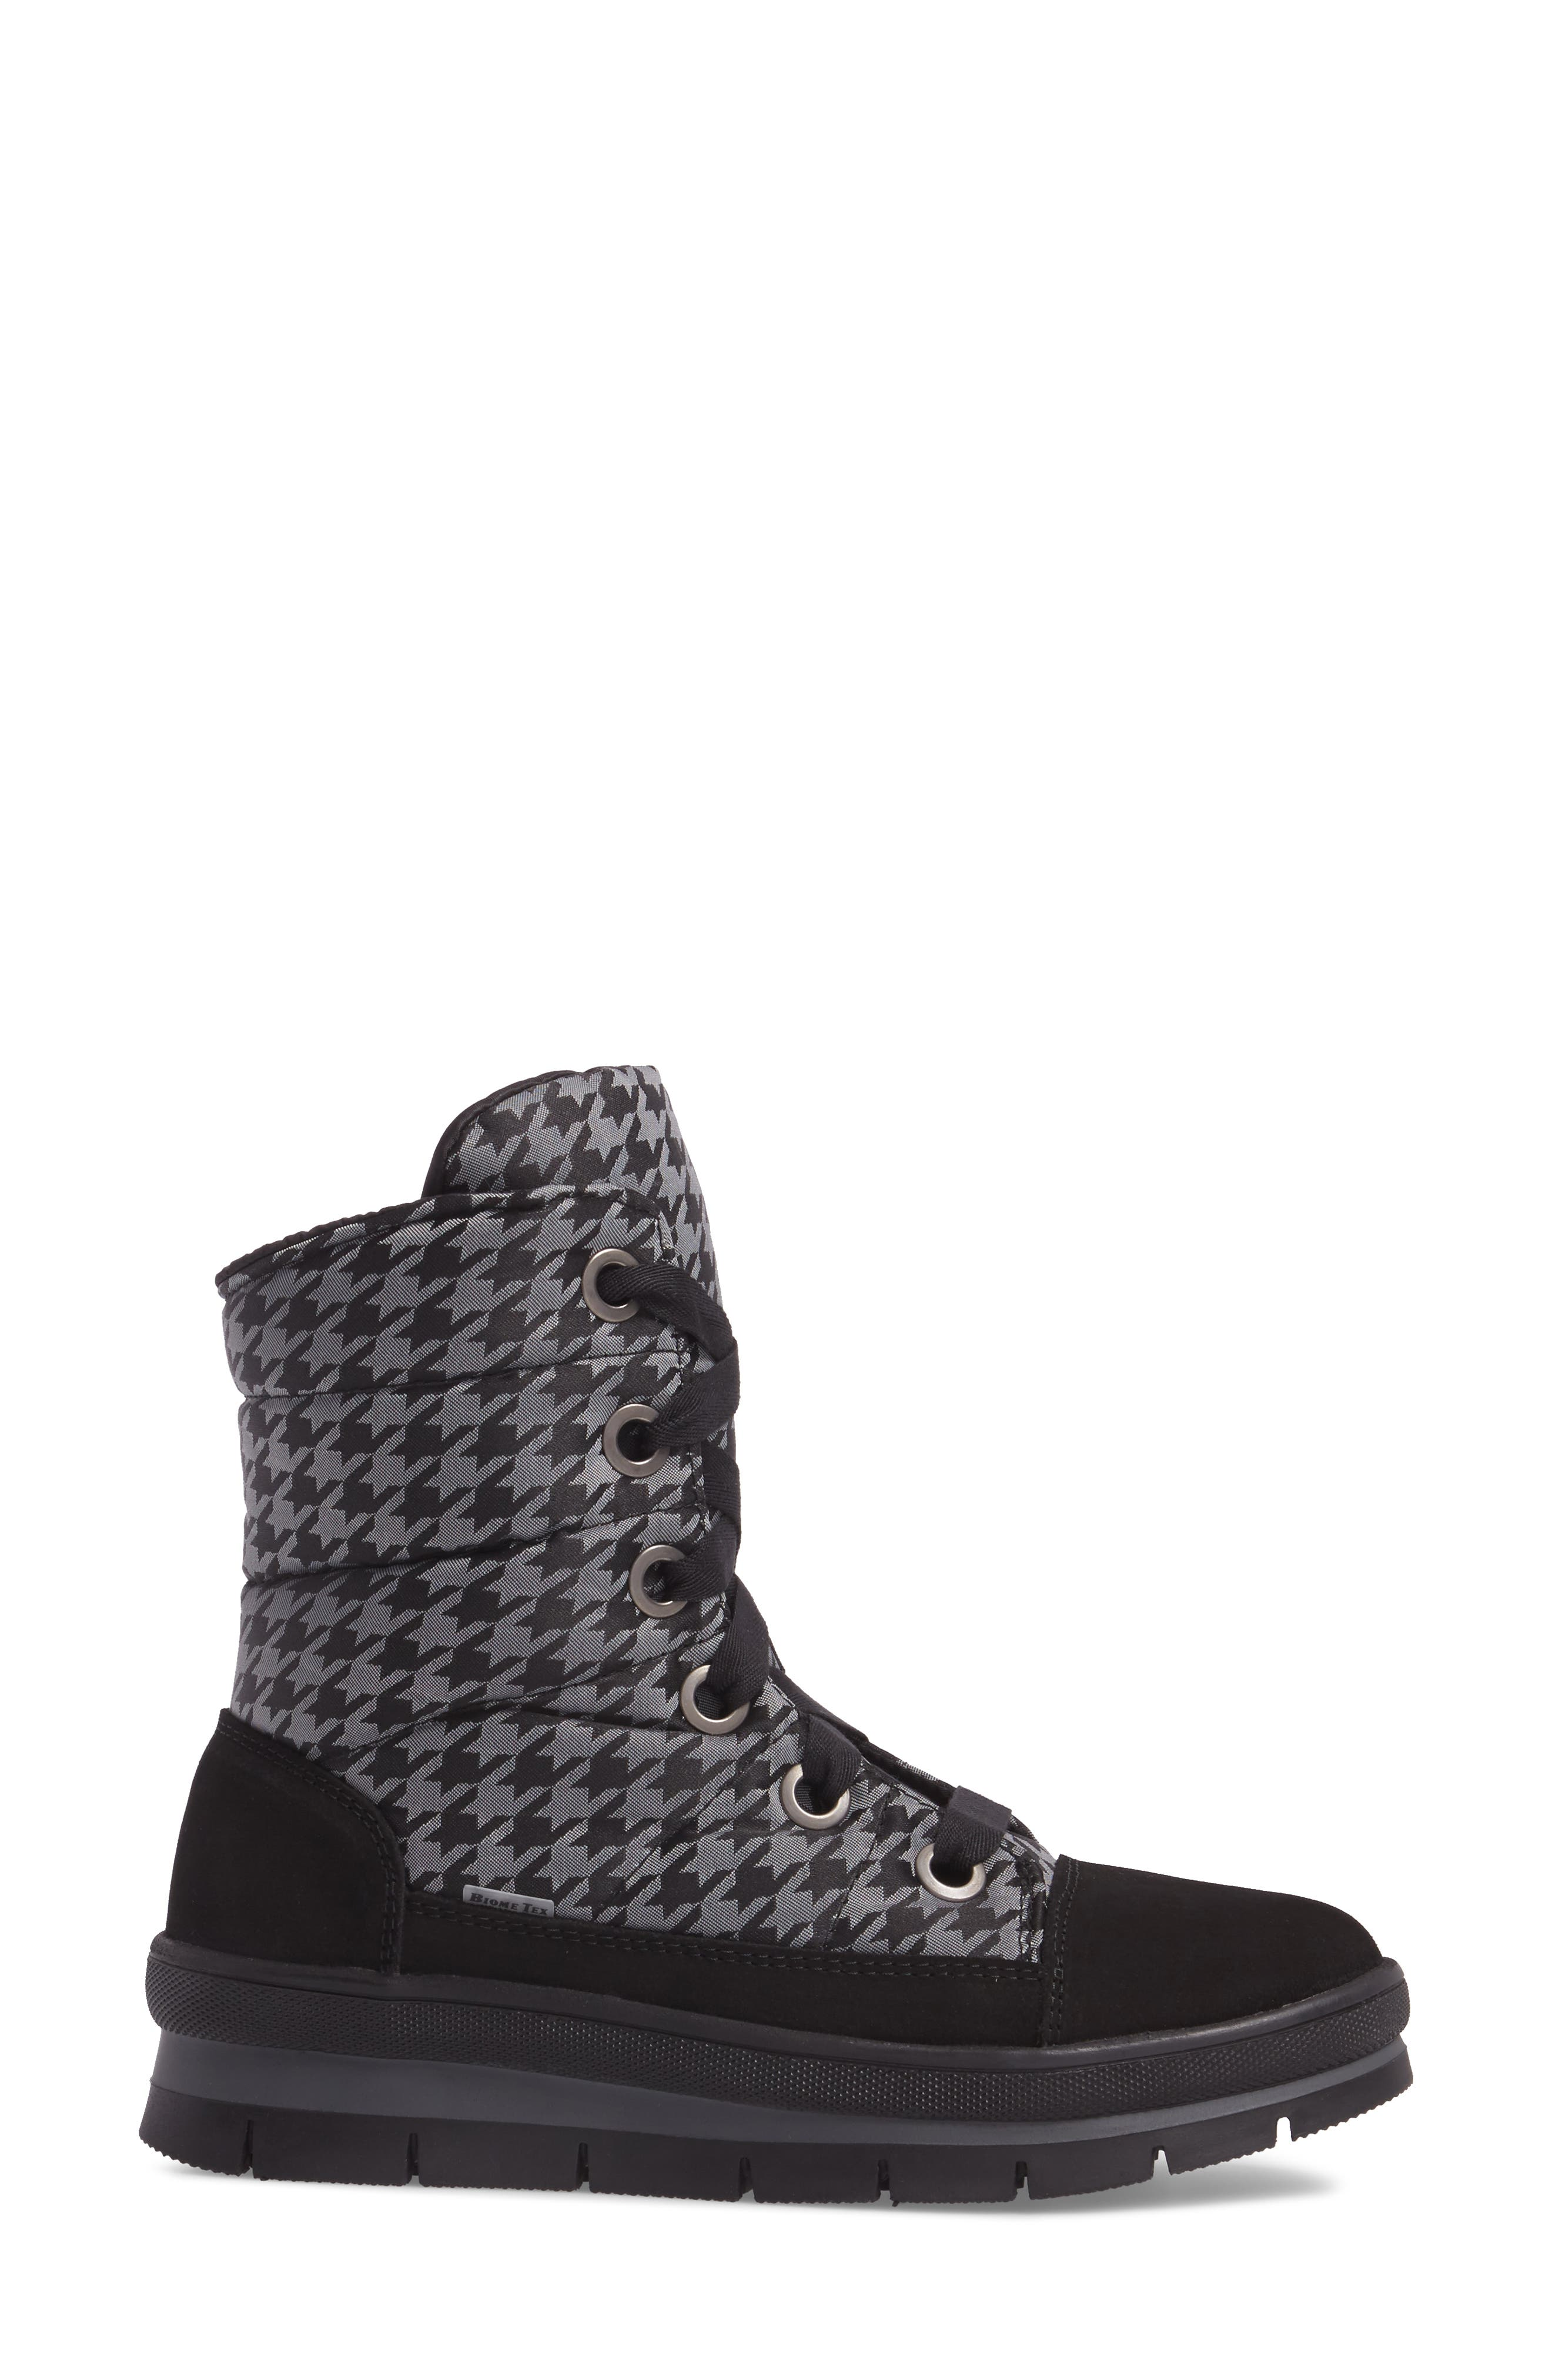 Meribel Waterproof Channel Quilted Lace Up Sneaker Boot,                             Alternate thumbnail 3, color,                             008